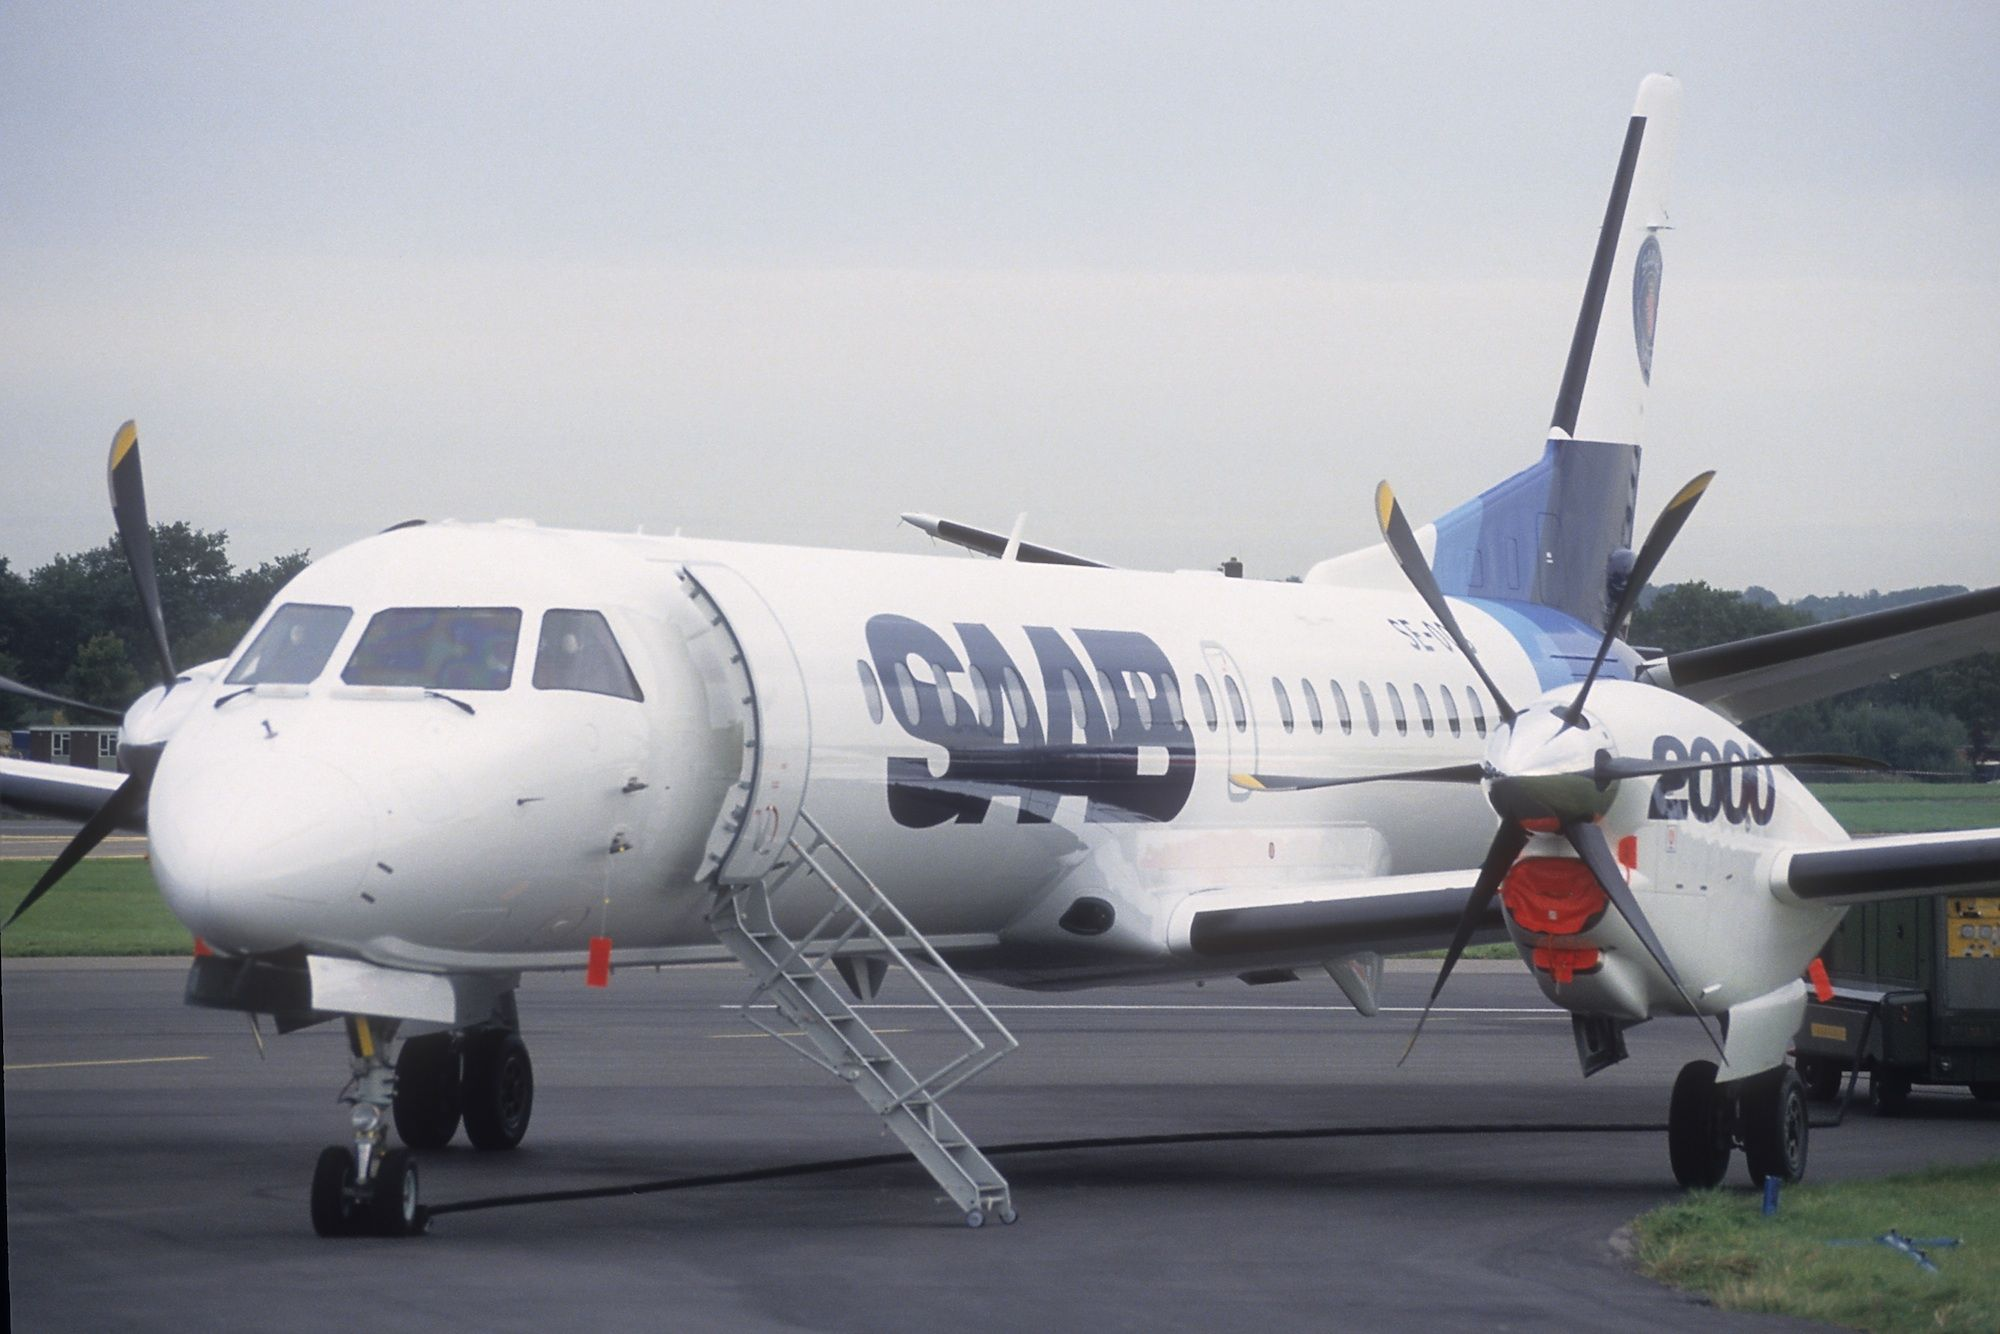 The Saab 2000 is a turbo prop aircraft able to seat 50